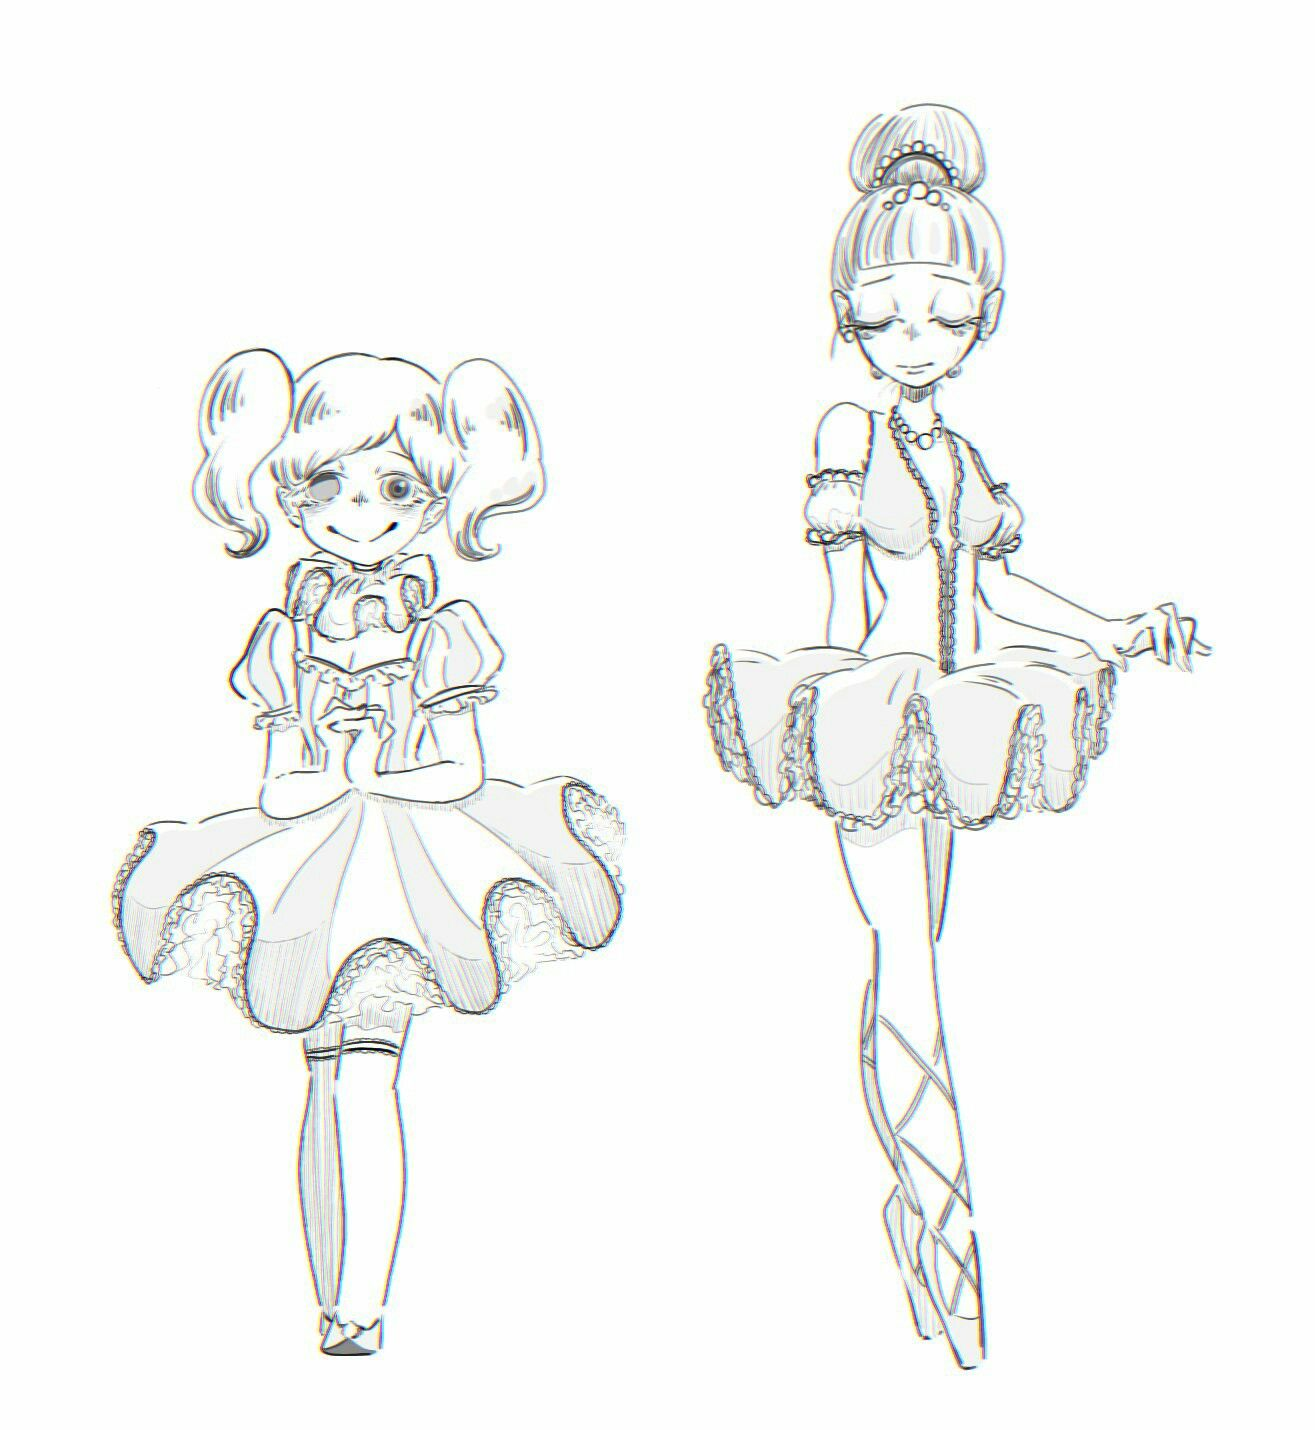 Ballora And Baby So Cute Fnaf Drawings Anime Fnaf Fnaf Art